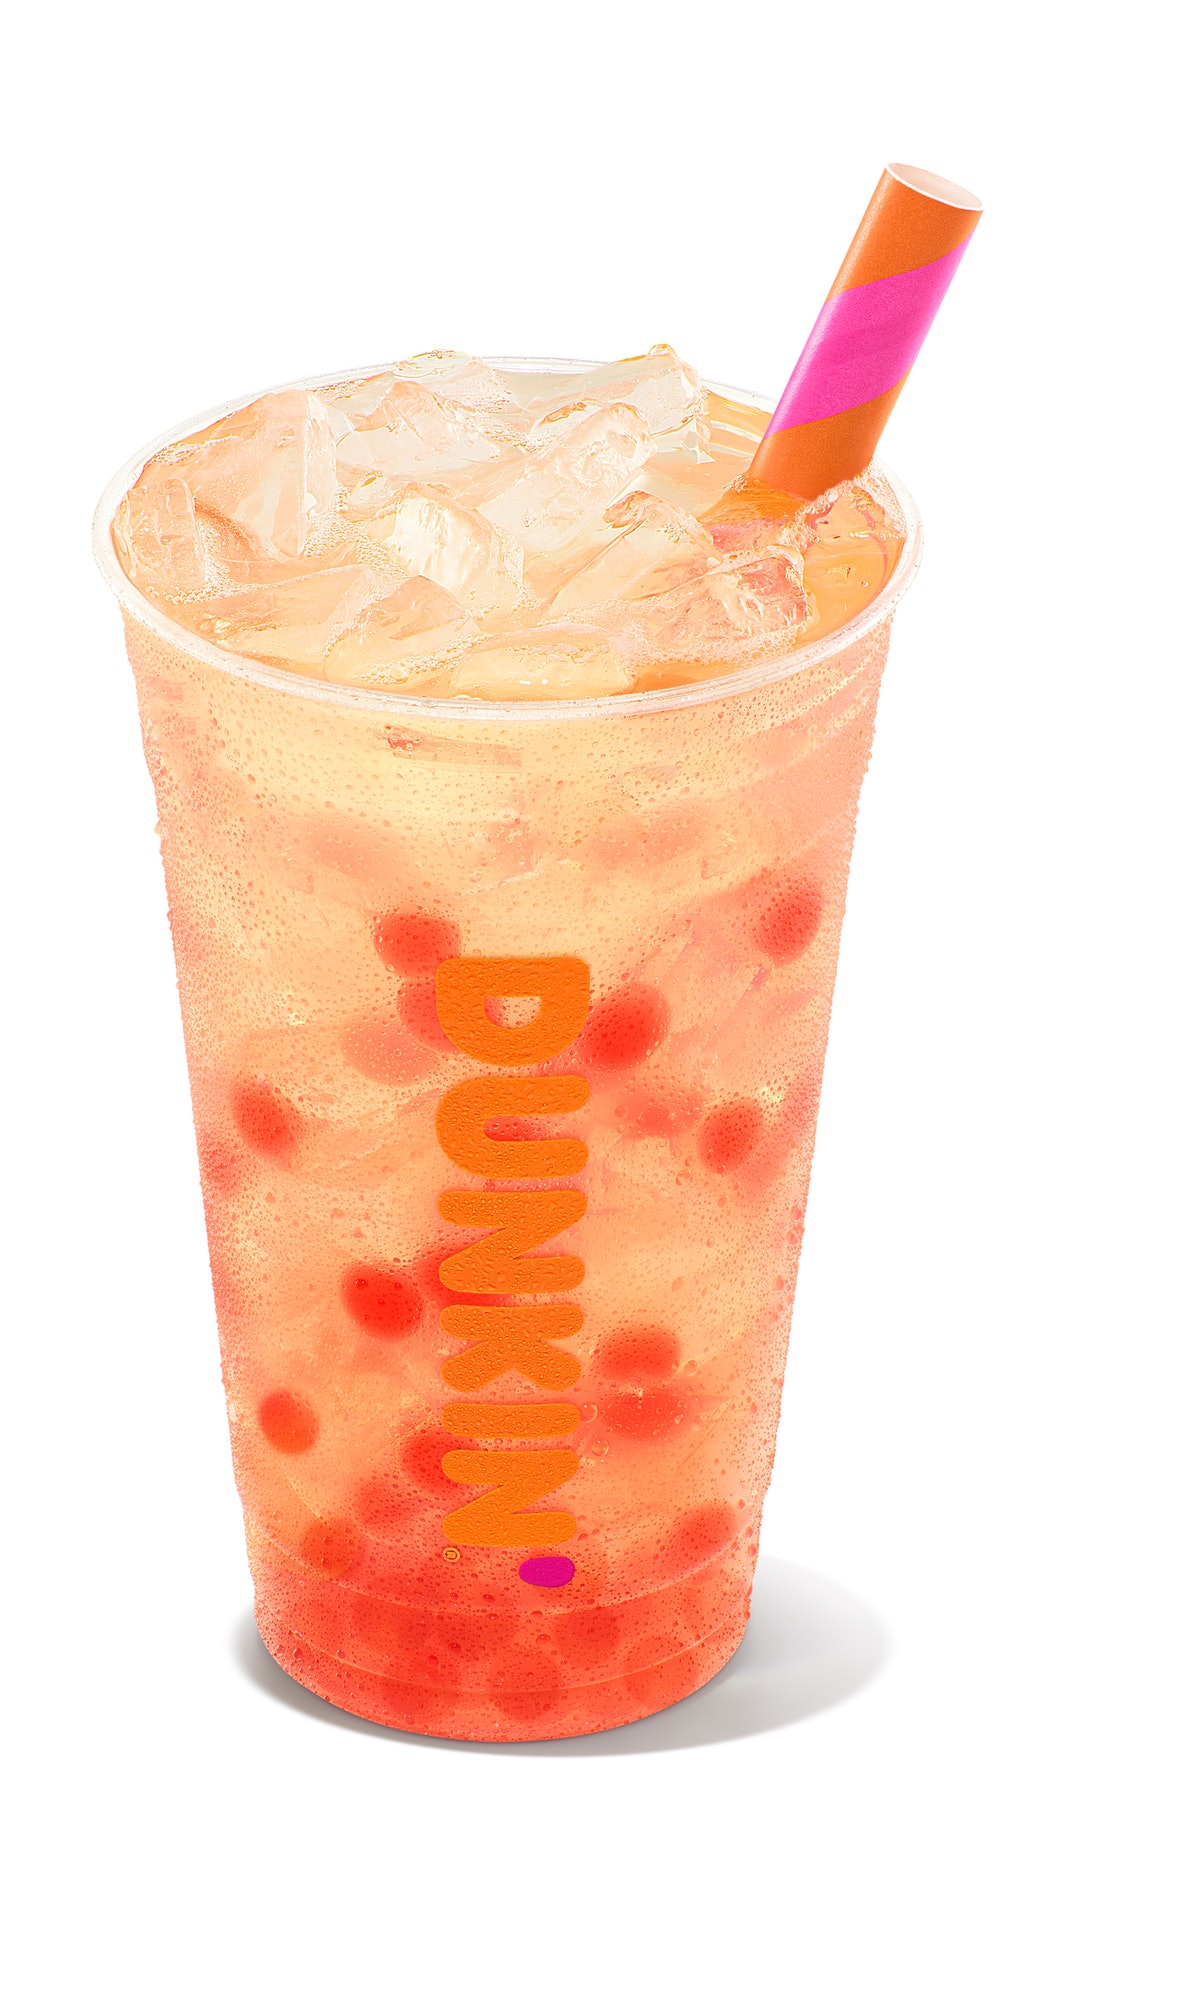 Dunkin's Popping Bubbles are available starting on June 23.